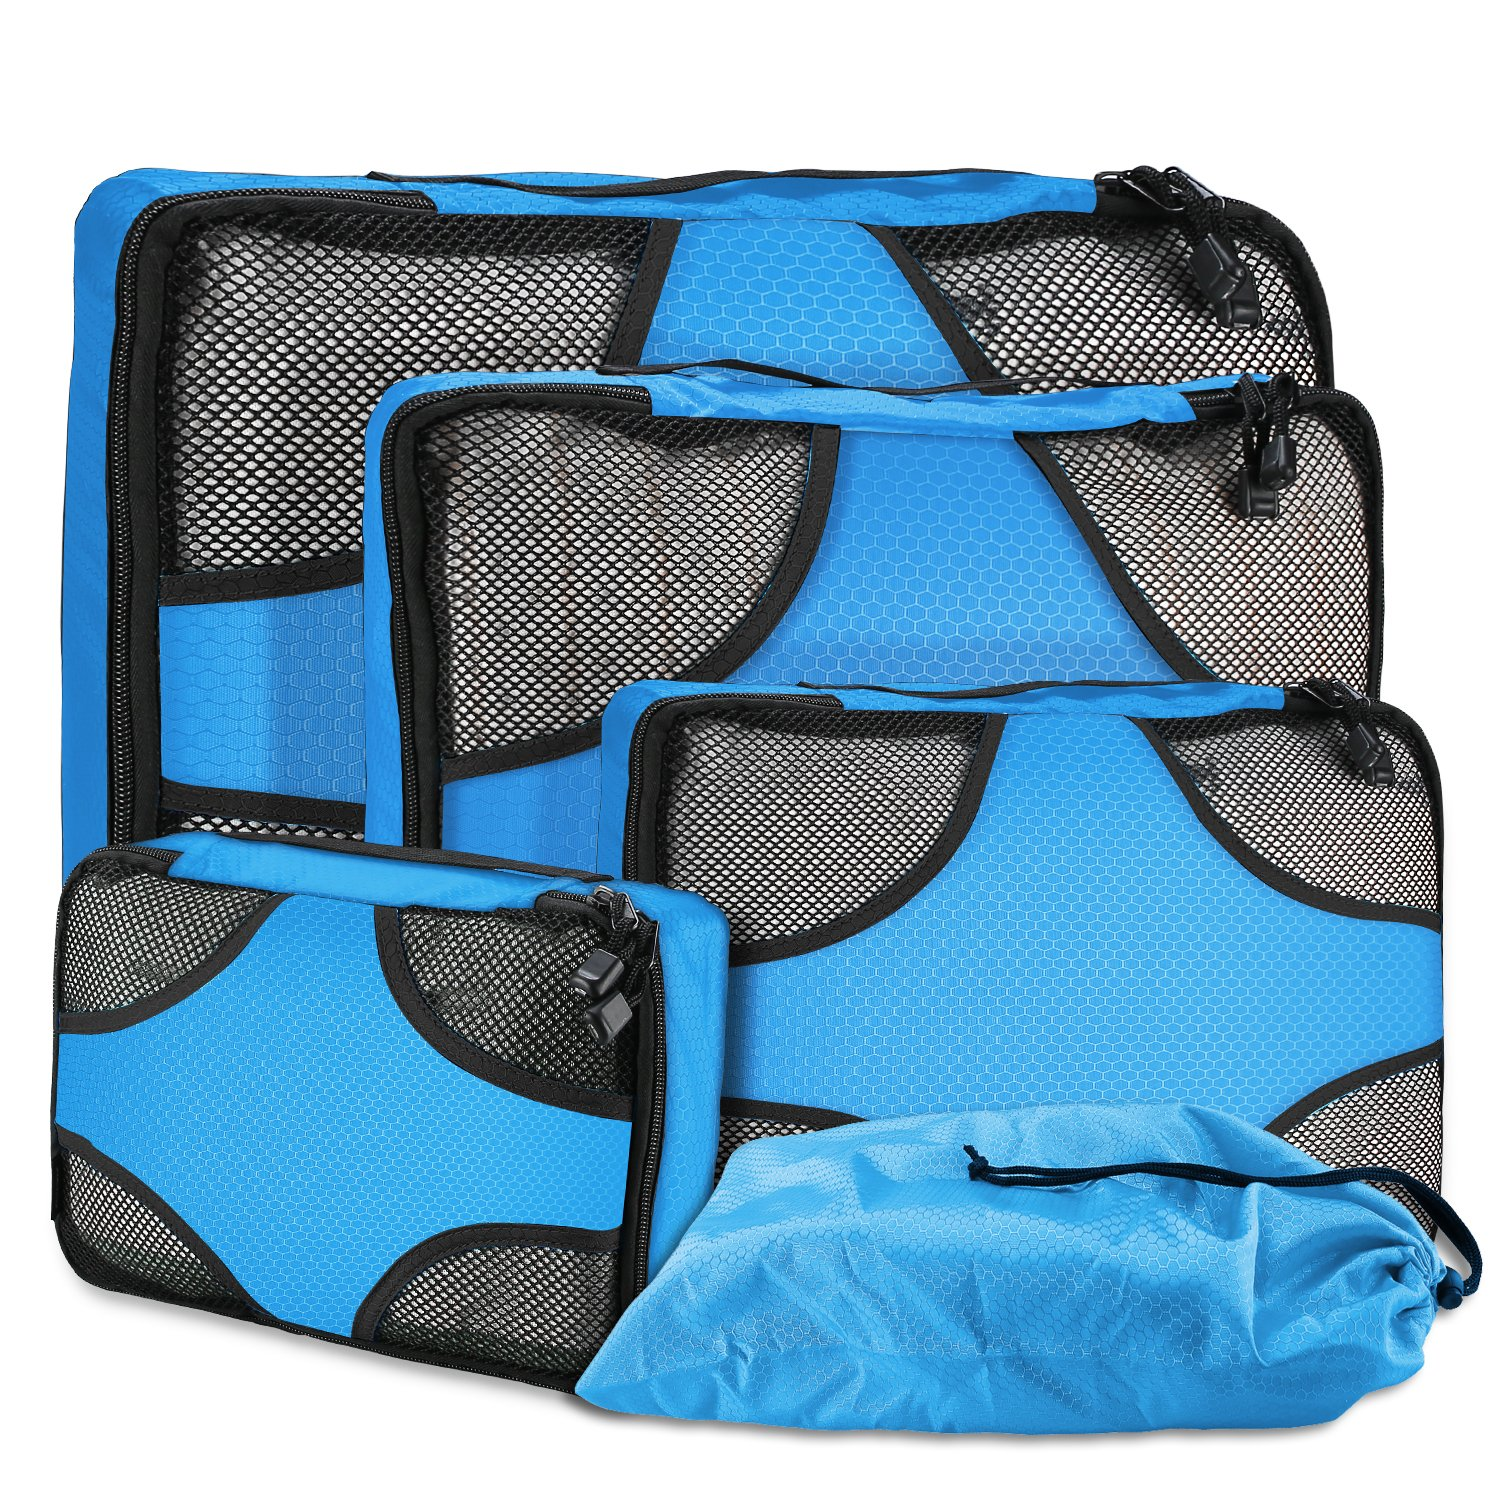 The ProCase Packing Cubes for Travel travel product recommended by Maria on Lifney.